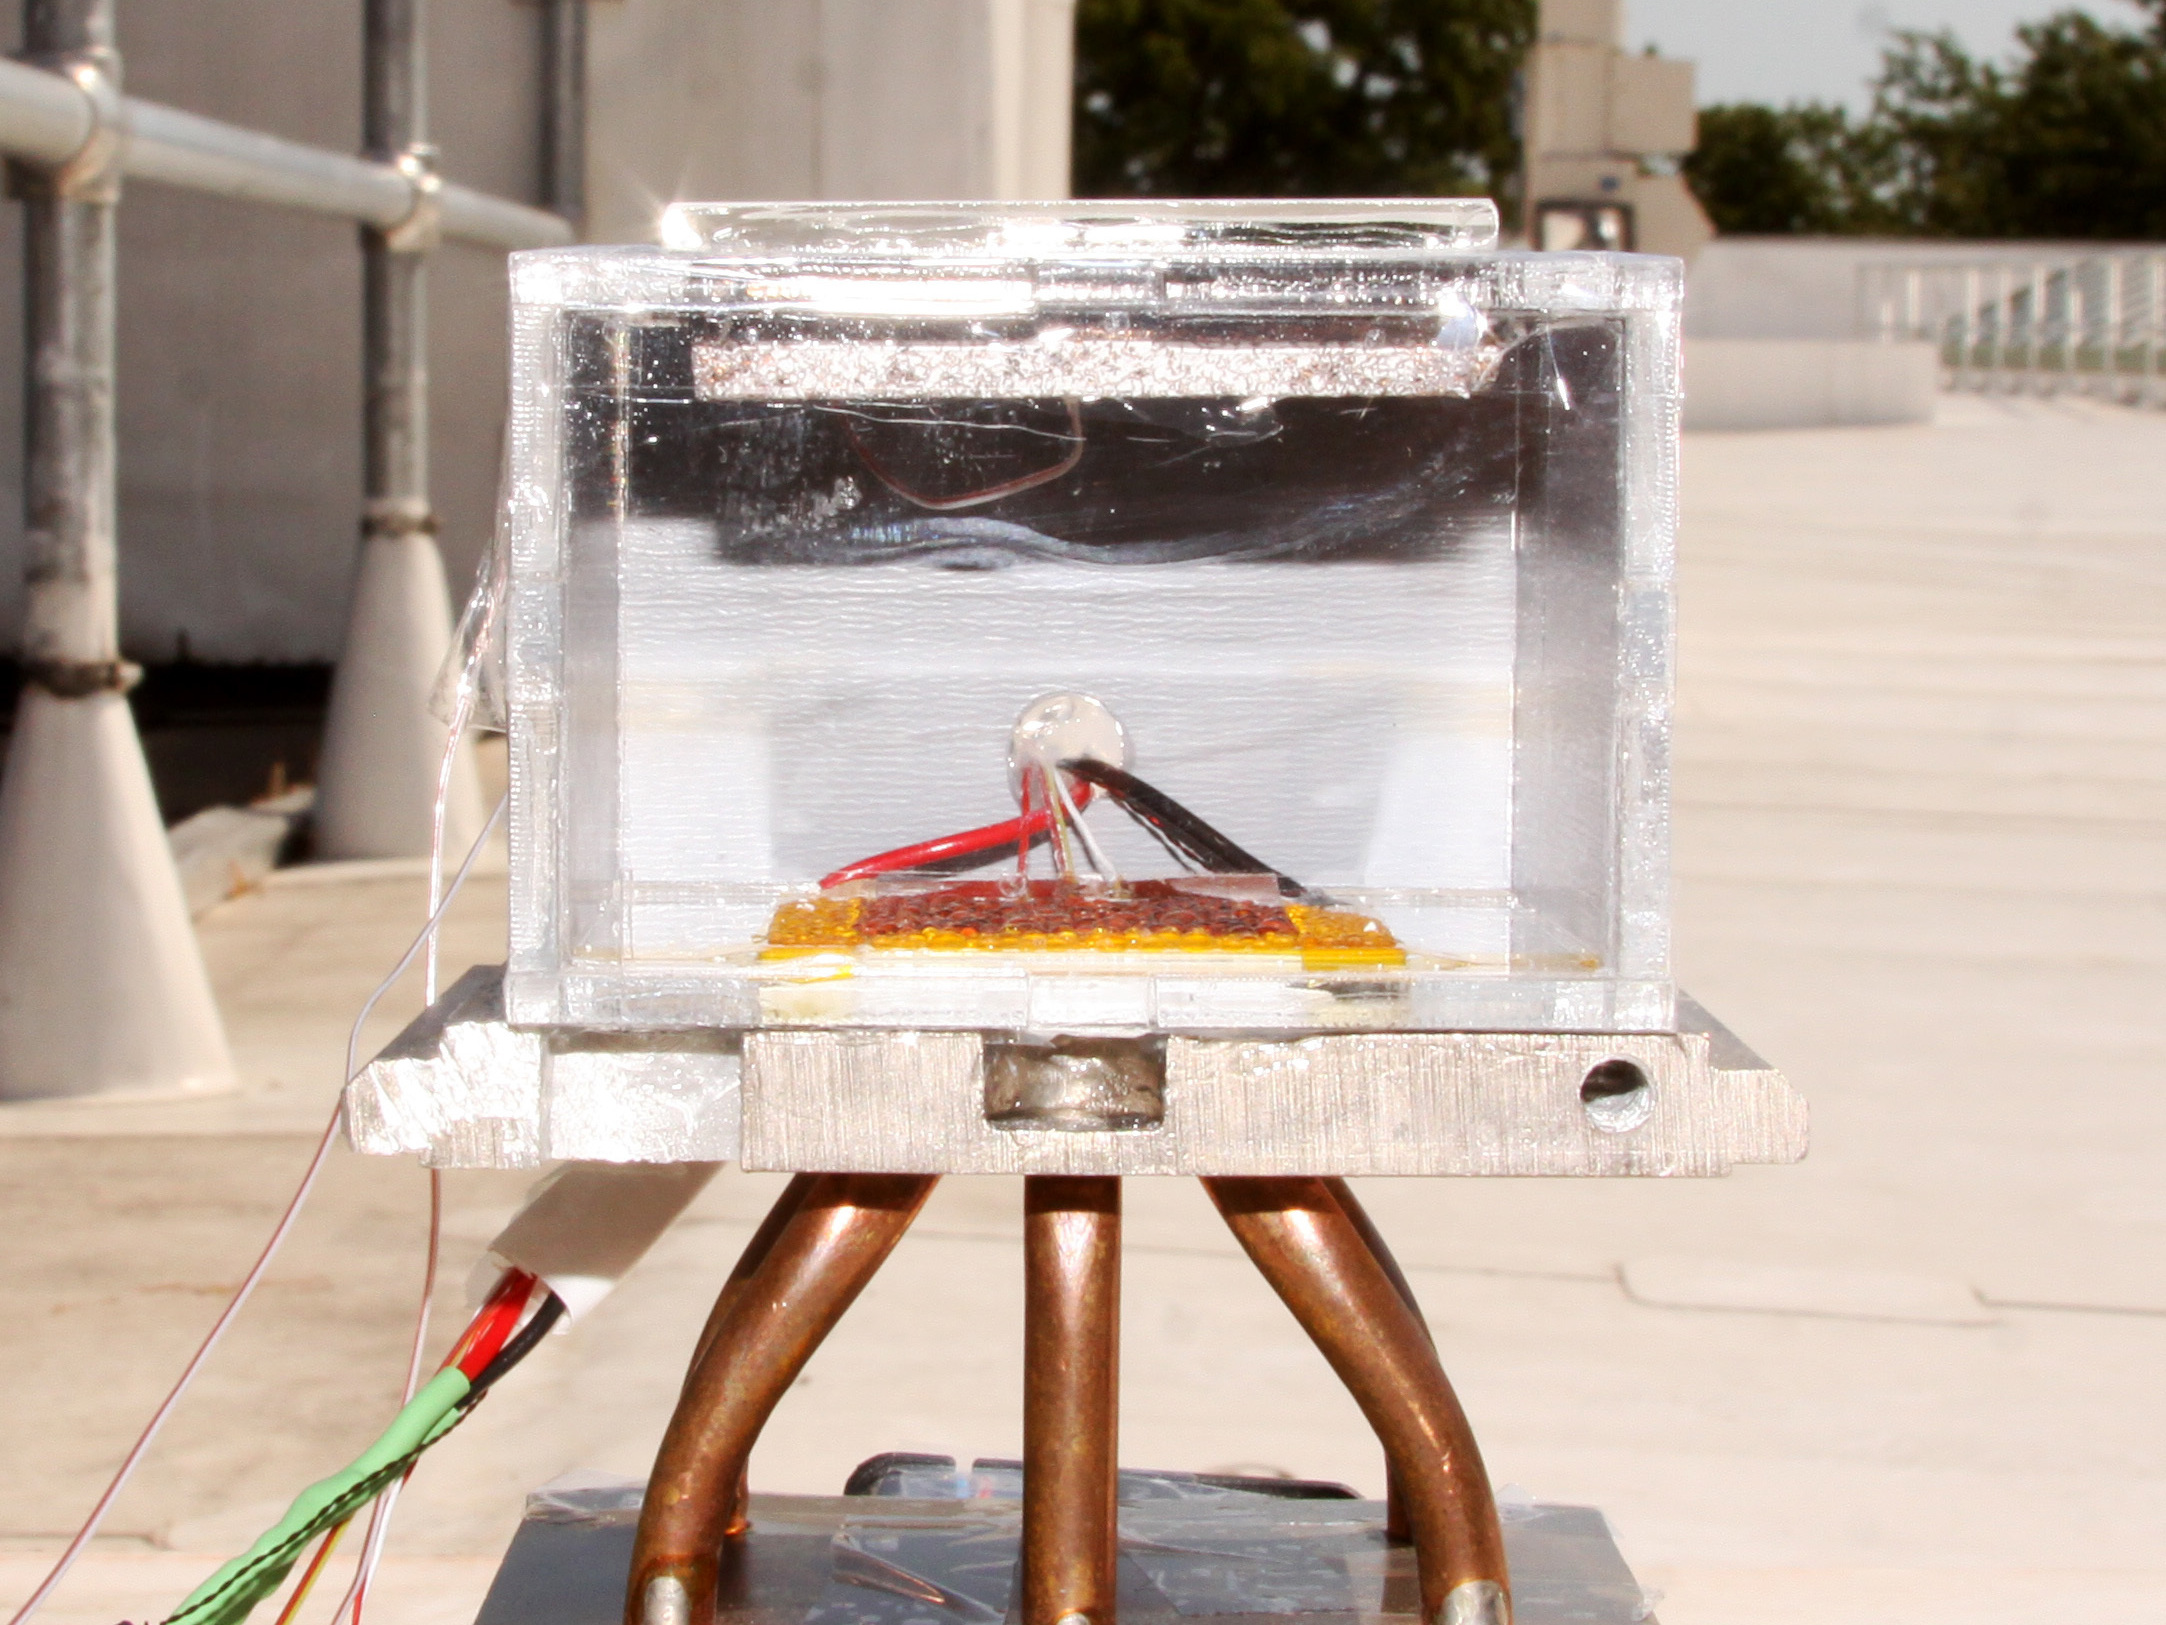 Researchers Find A New Way To Make Water From Thin Air